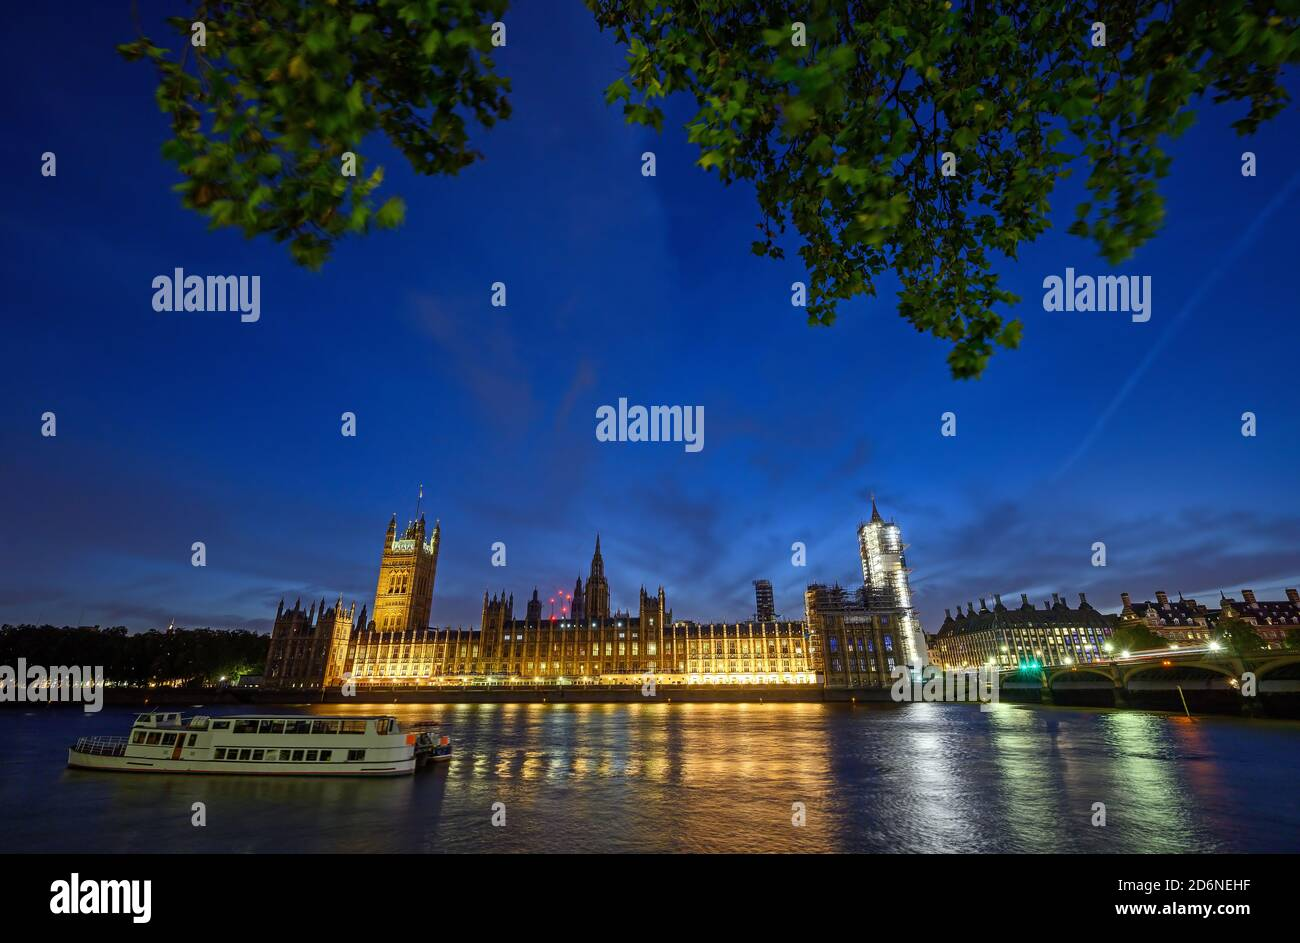 Houses of Parliament in Westminster, London, UK. View across the Thames with Westminster Bridge. Boat in foreground and long exposure motion blur. Stock Photo